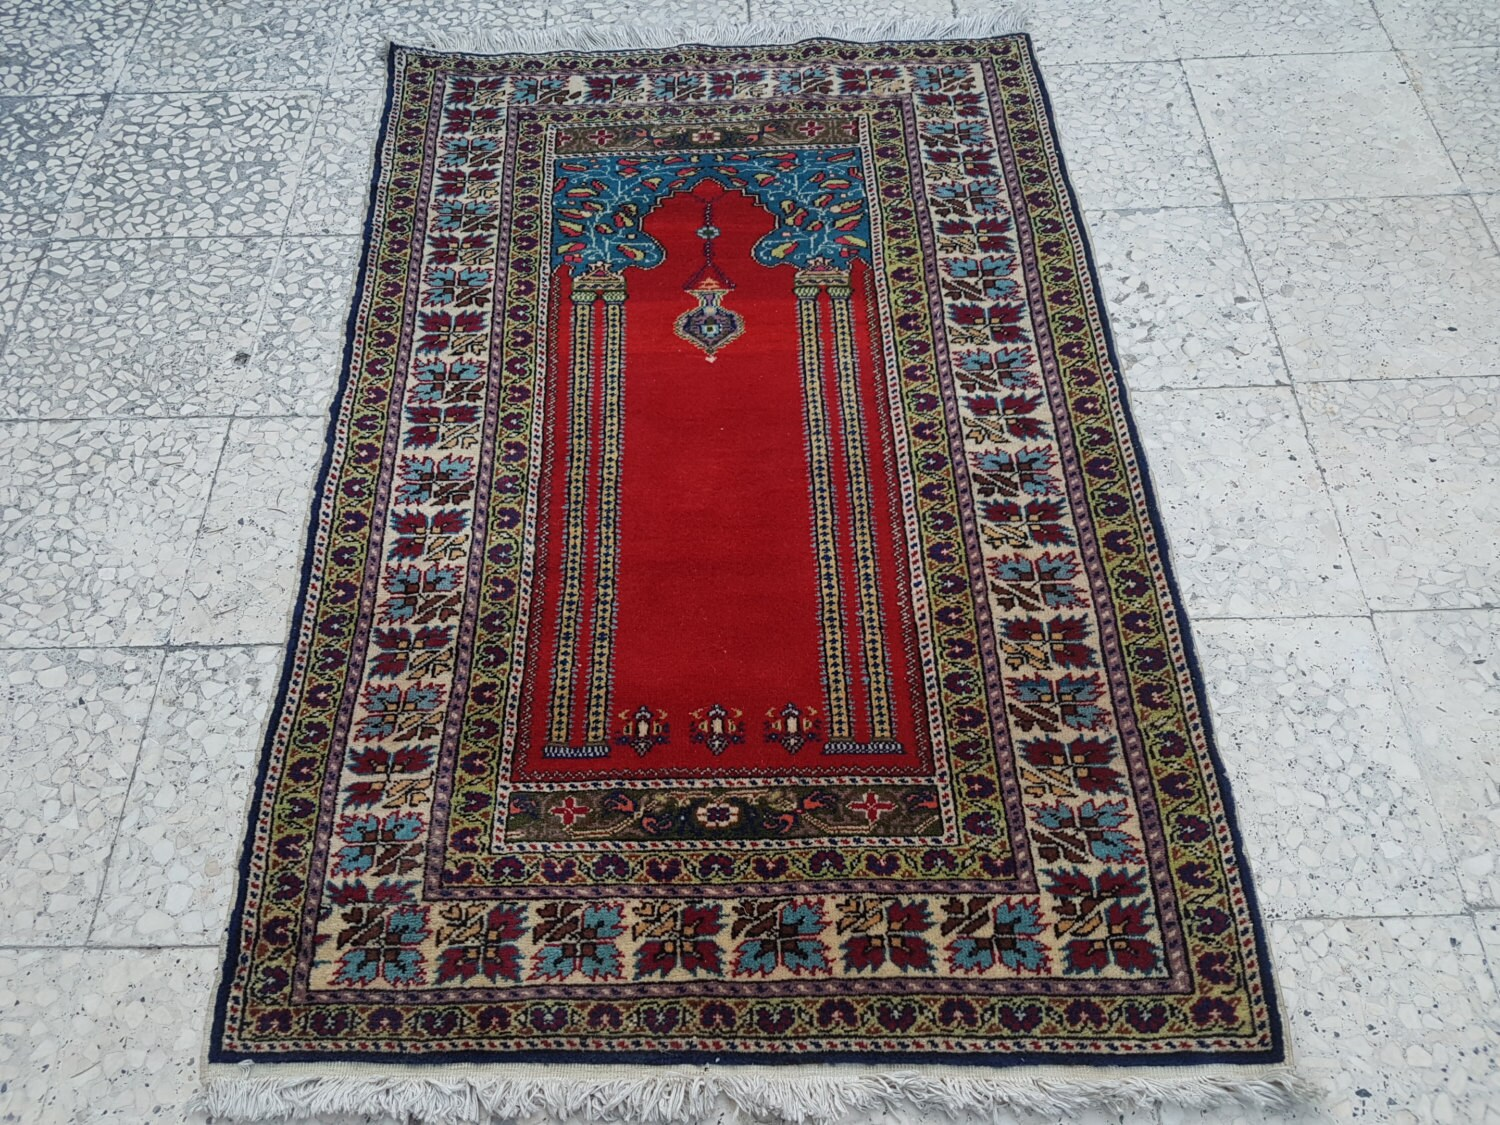 Teppich Shaggy Shine Traditional Oriental Handmade Prayer Carpet Double Knotted Small Sized Pile Rug Wall Hanging Floor Covering Rugs 3 X 4 7 92x139cm